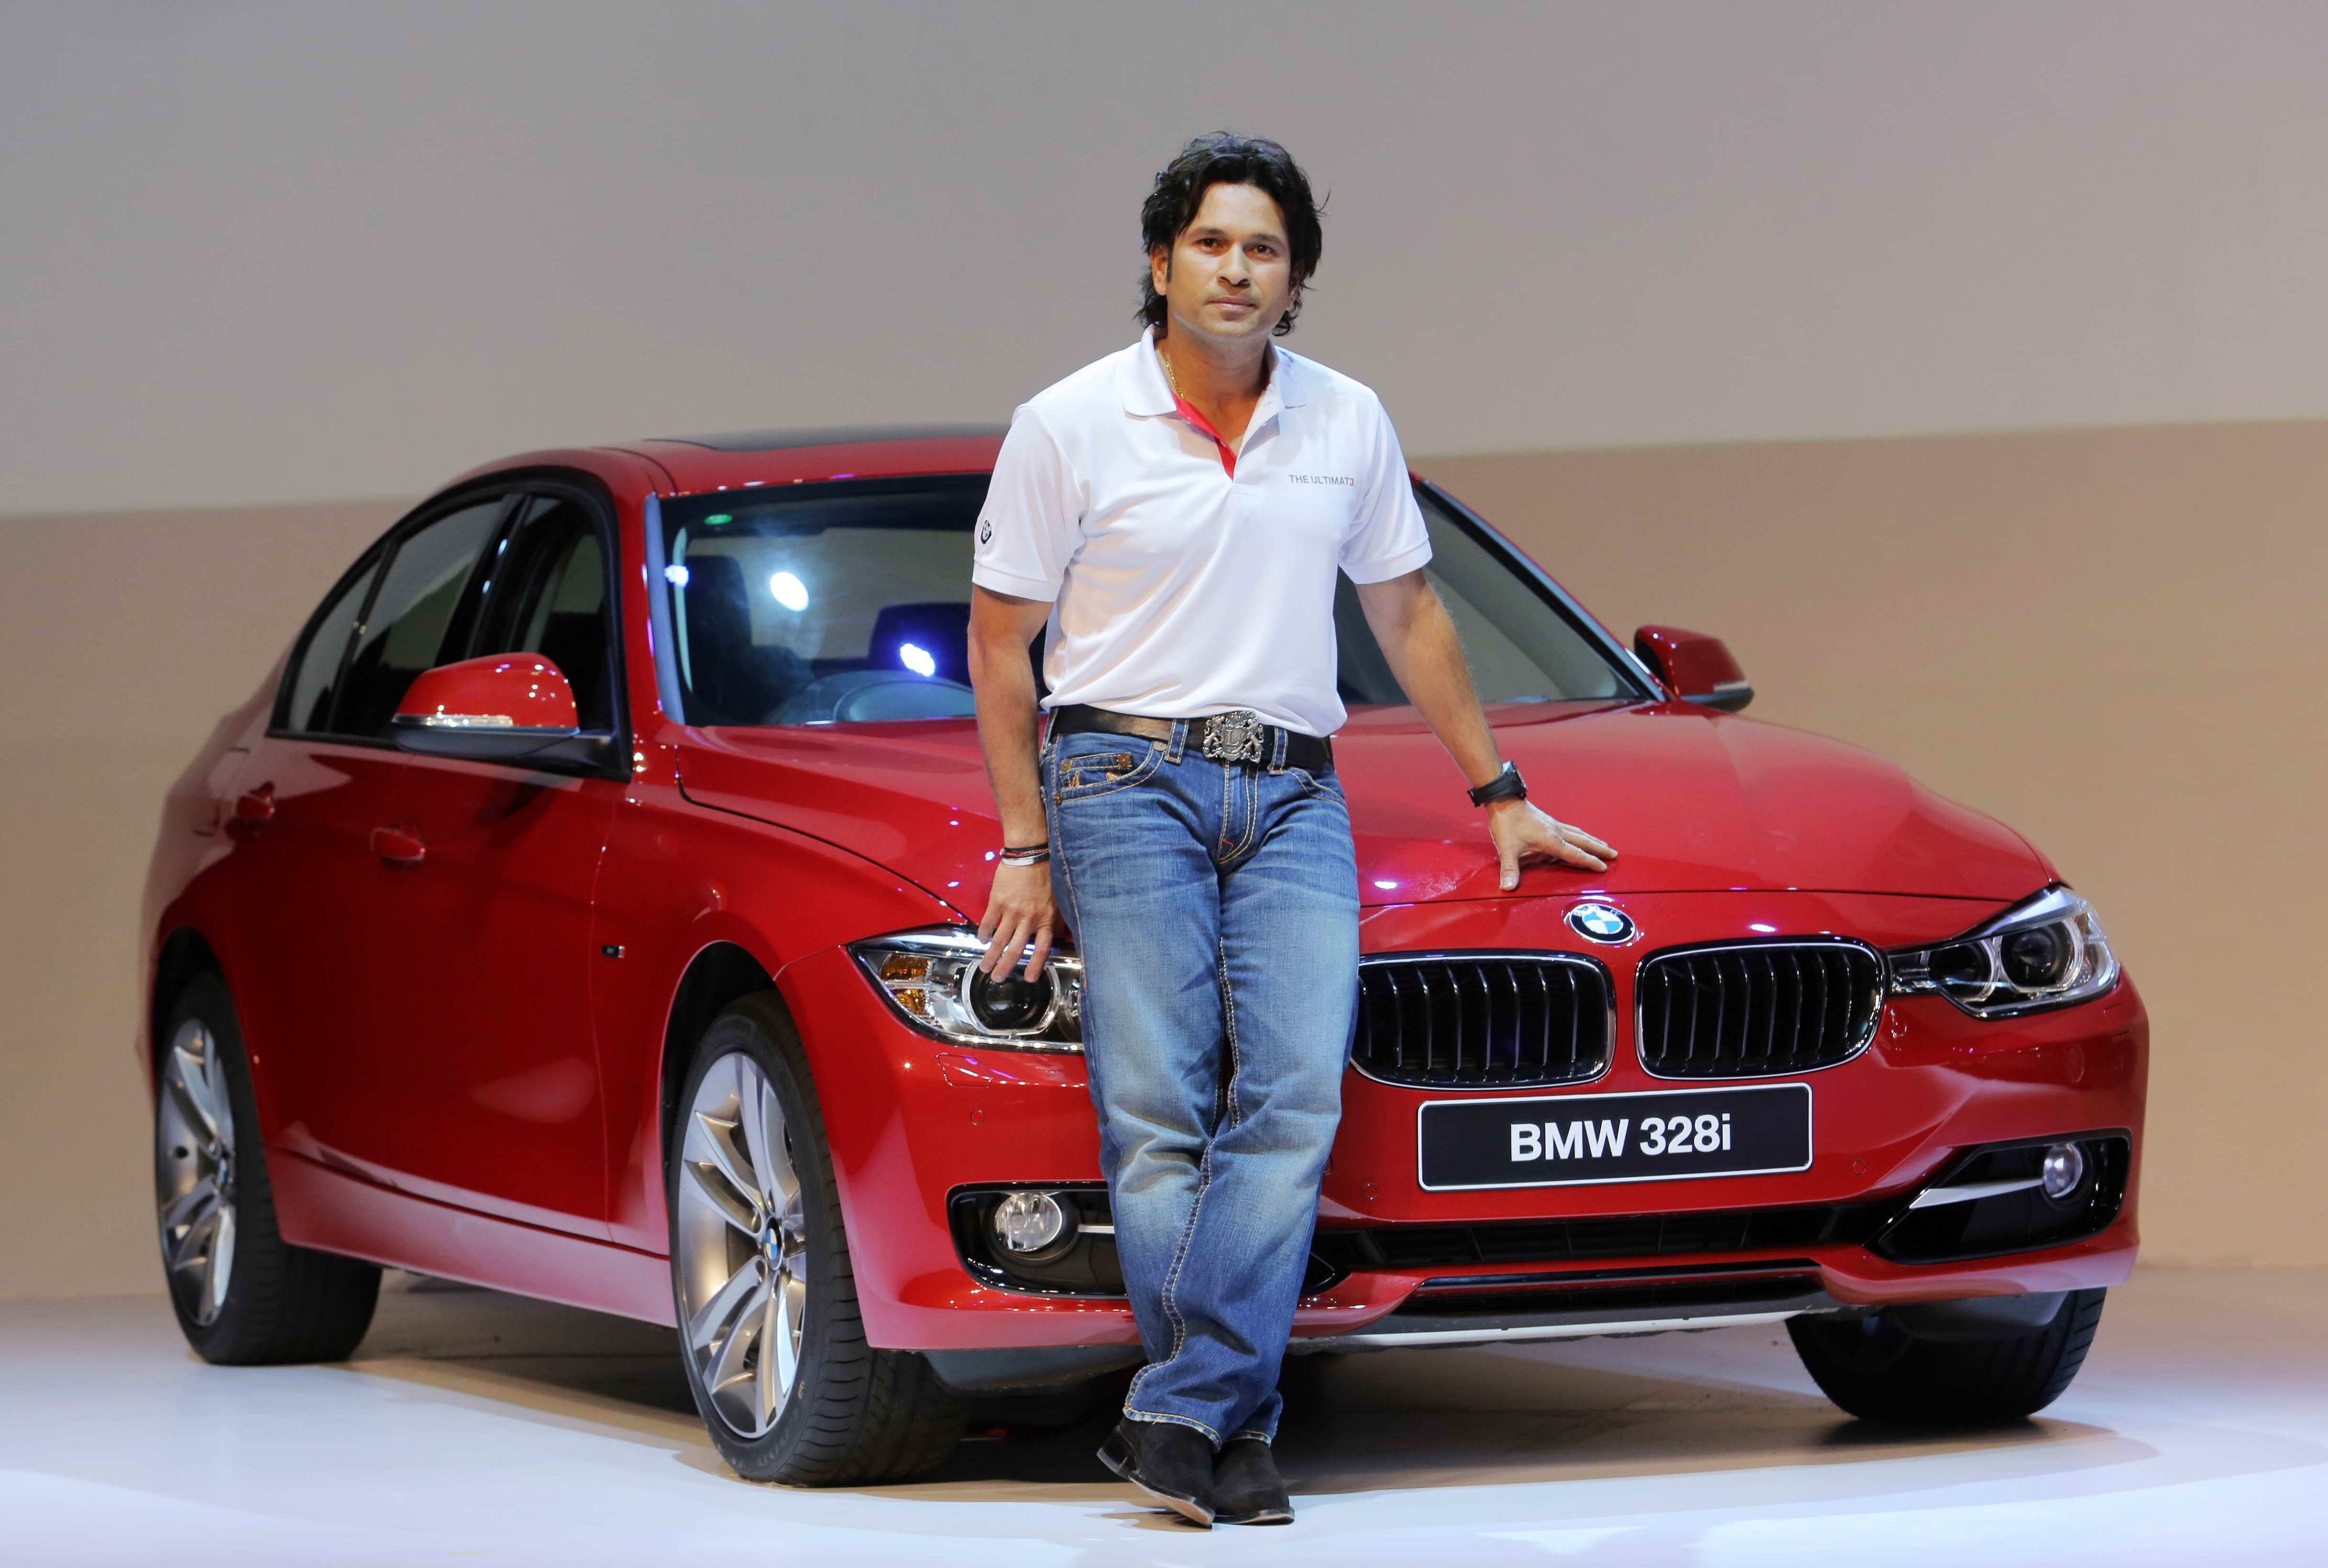 free master sachin tendulkar beautiful style look with car pose mobile hd download background pictures